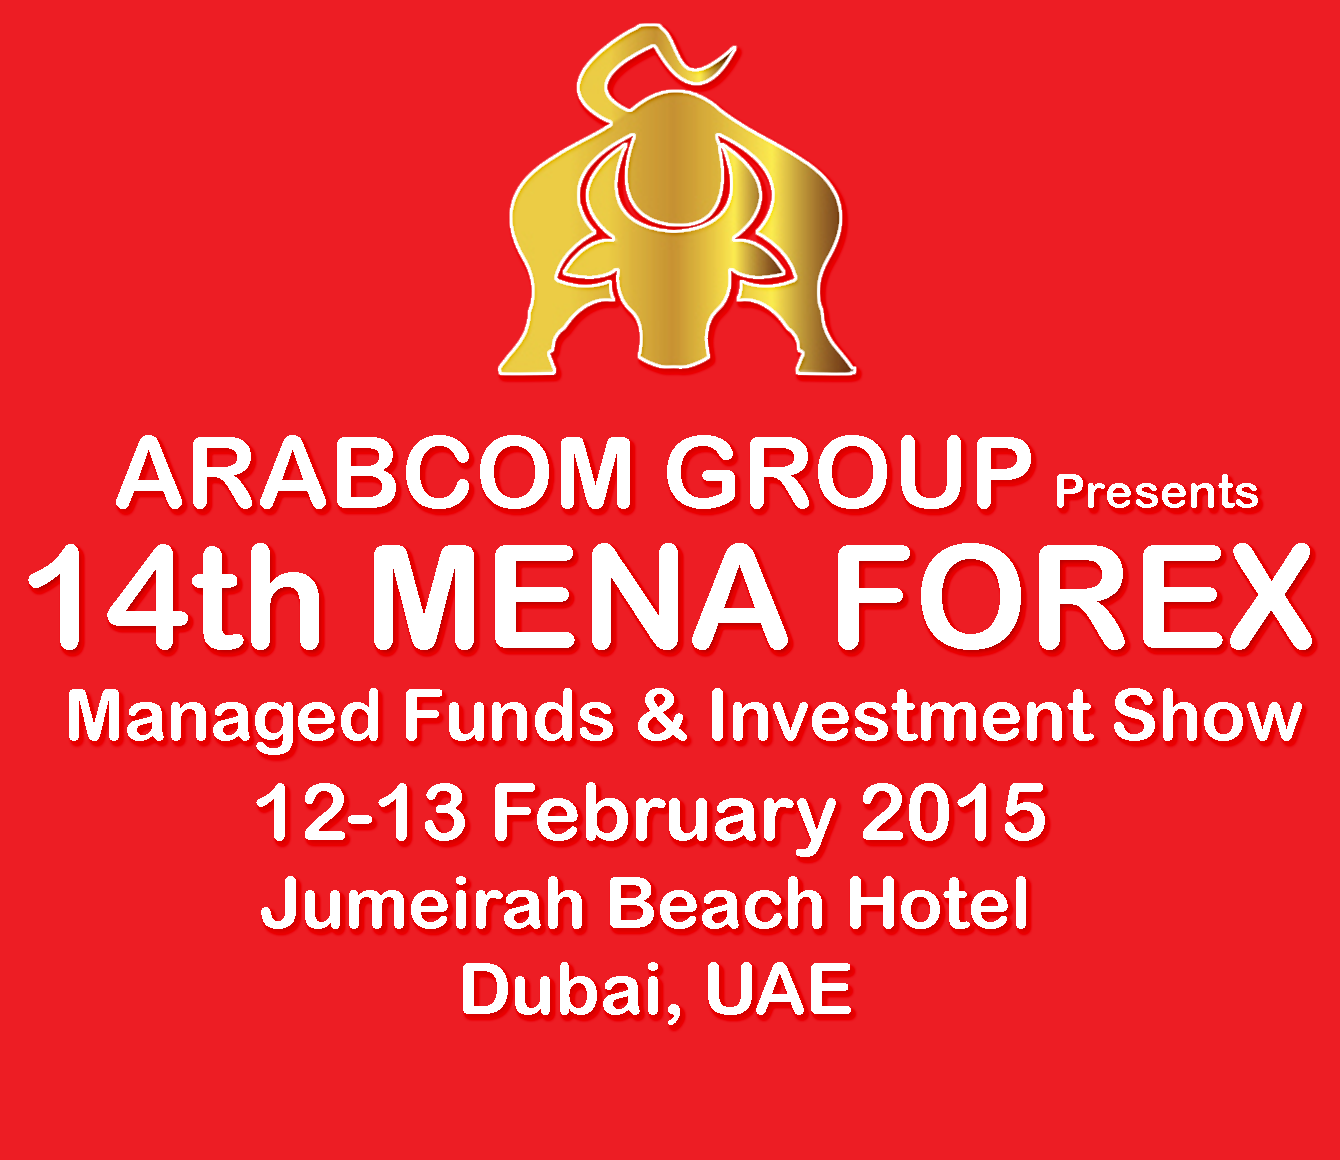 14th mena forex managed funds and investment show 2015